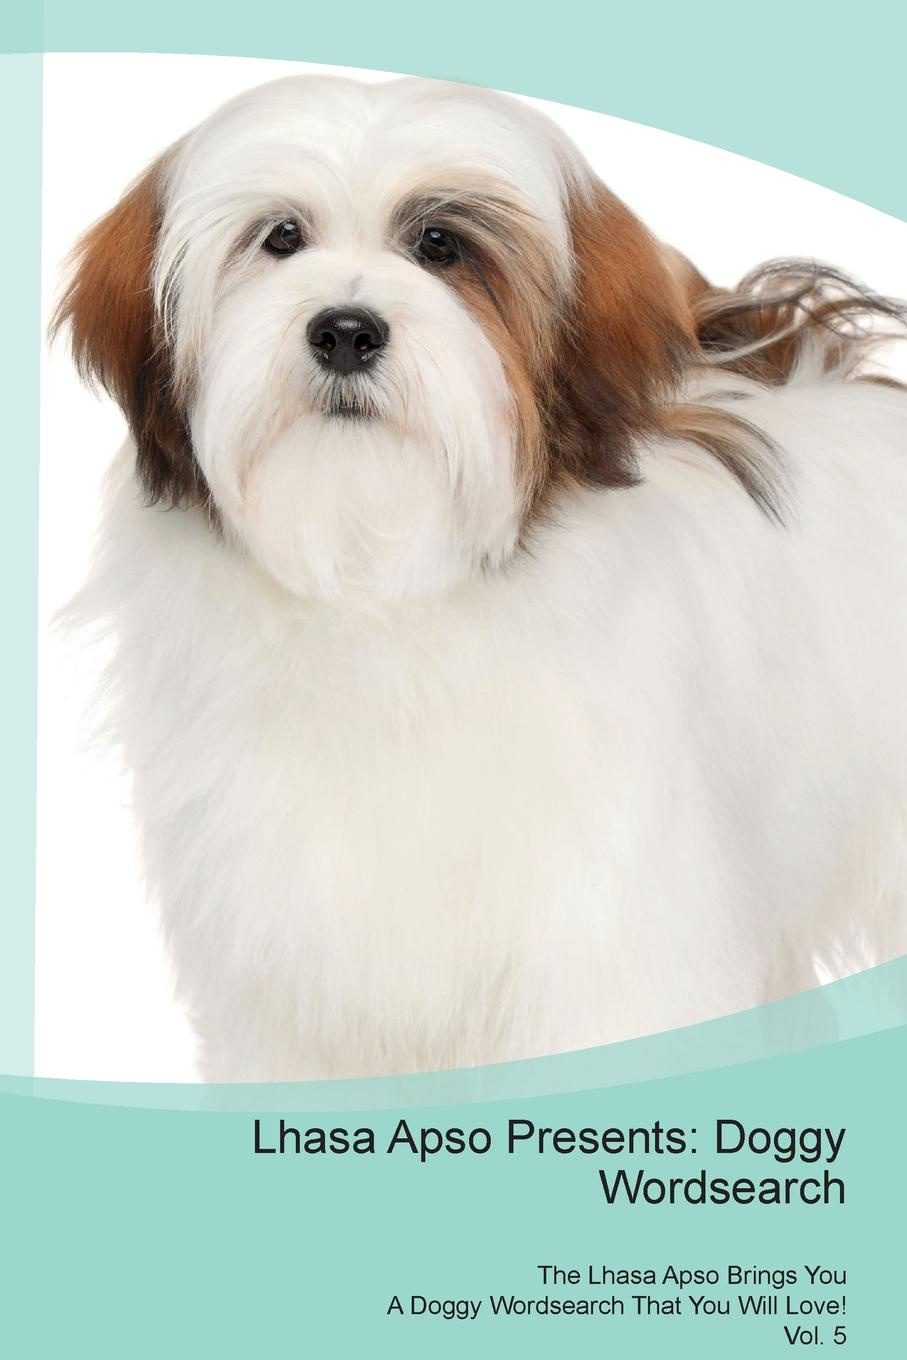 Doggy Puzzles Lhasa Apso Presents. Wordsearch The Brings You A That Will Love! Vol. 5